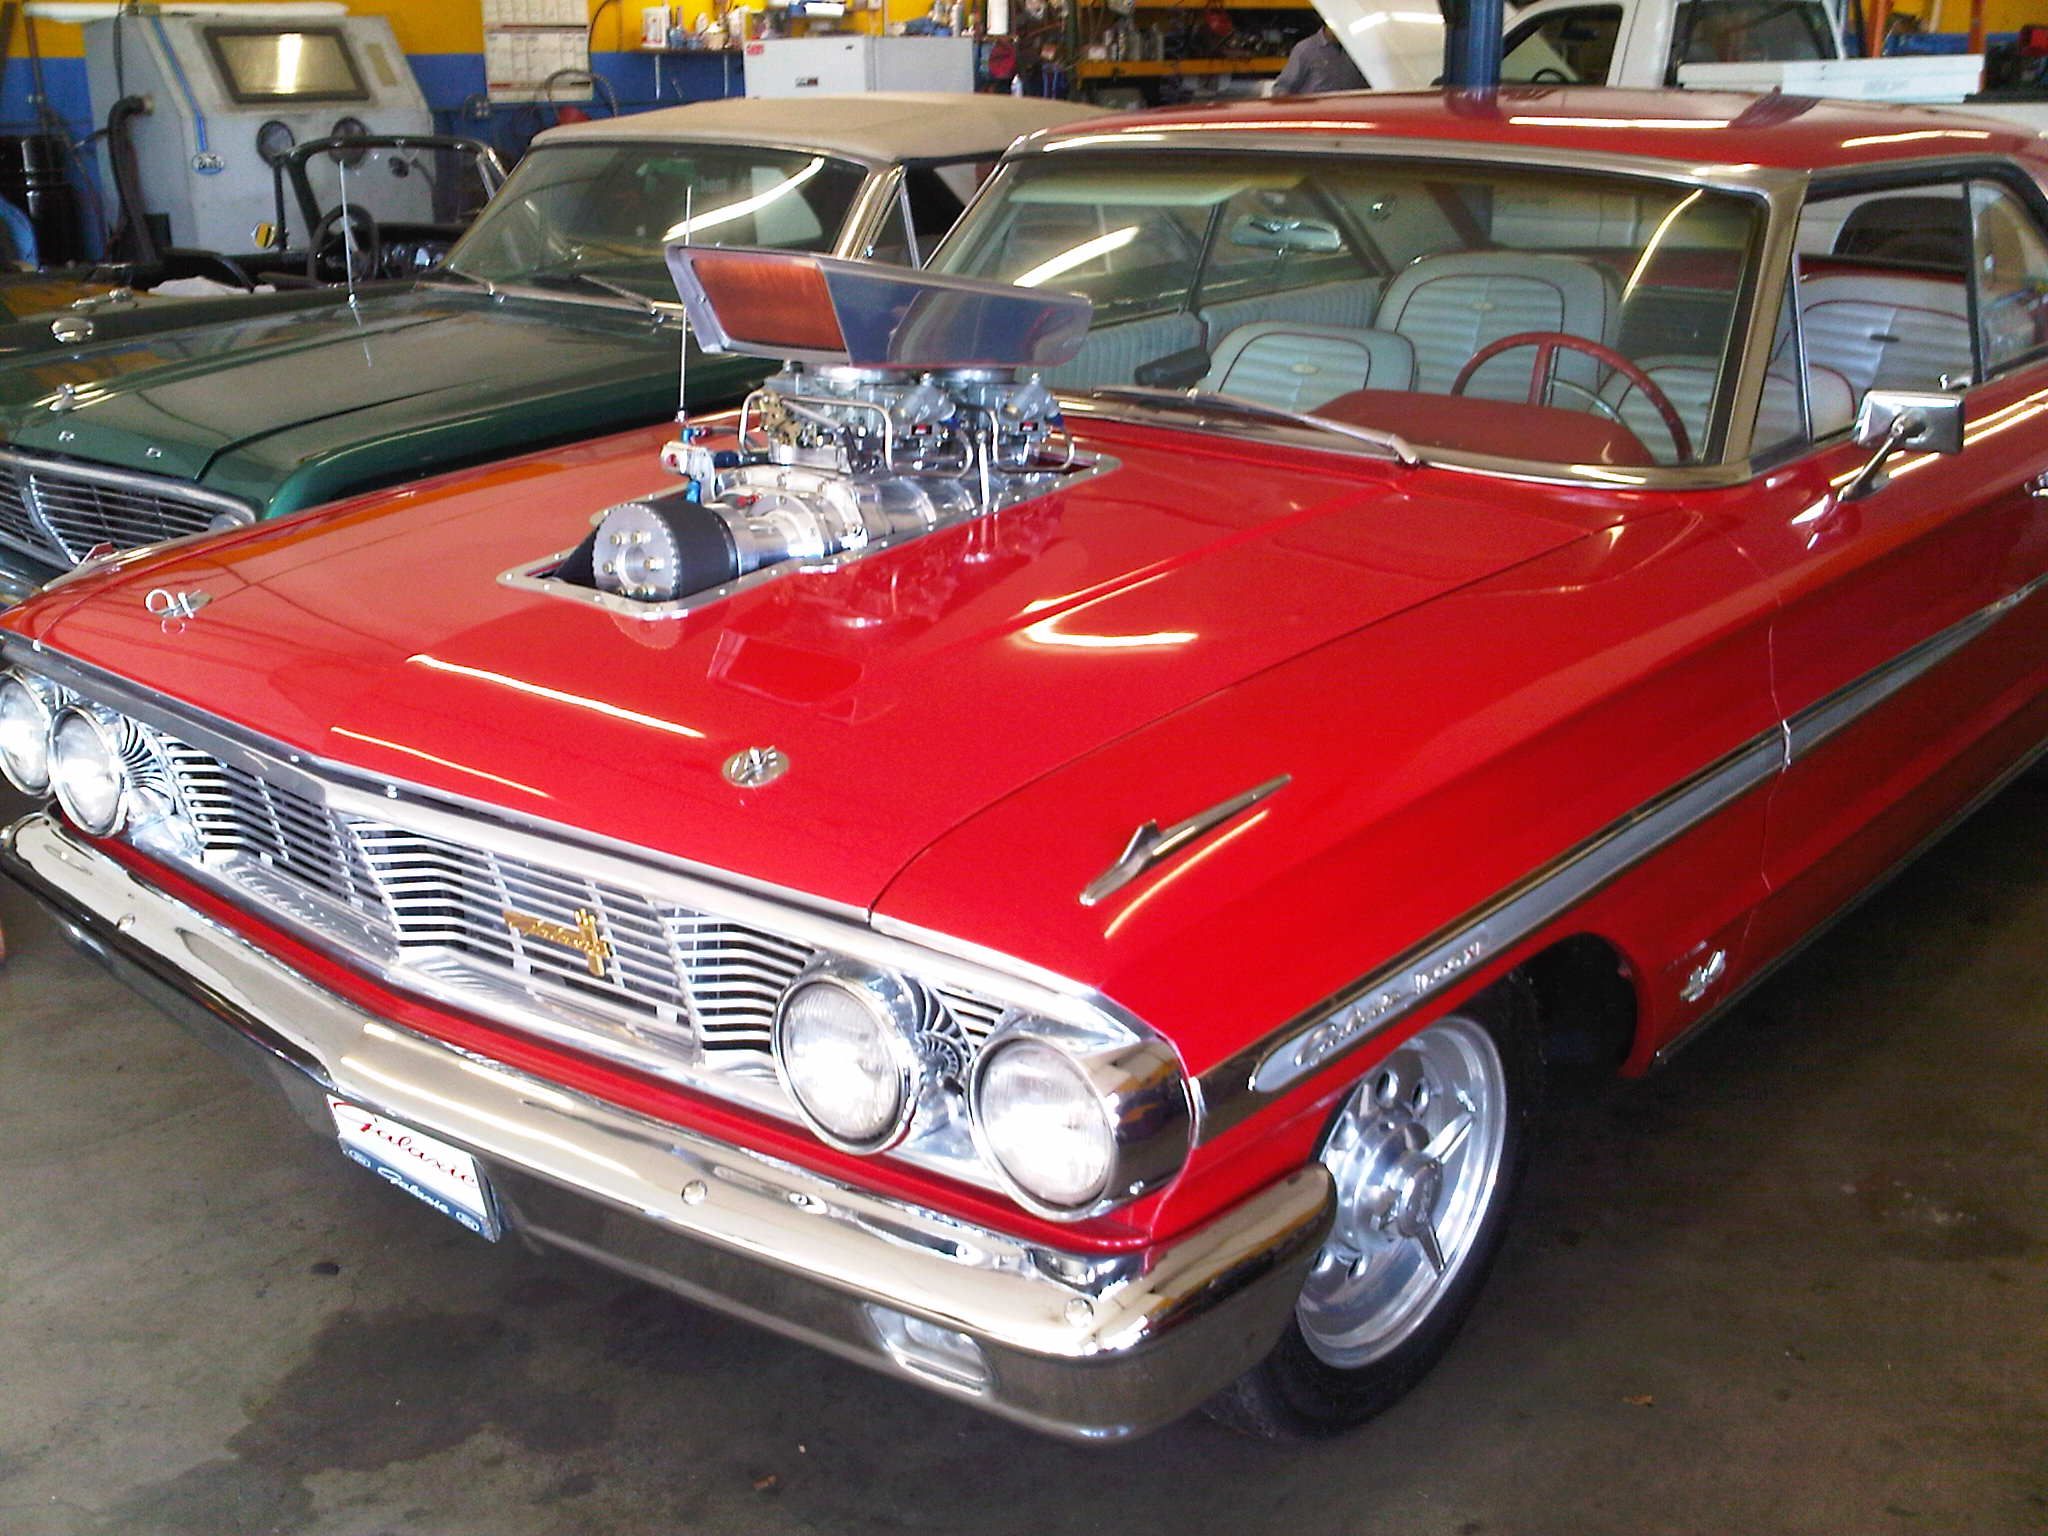 Tristar Automotive repairs and restores street rods and muscle cars.